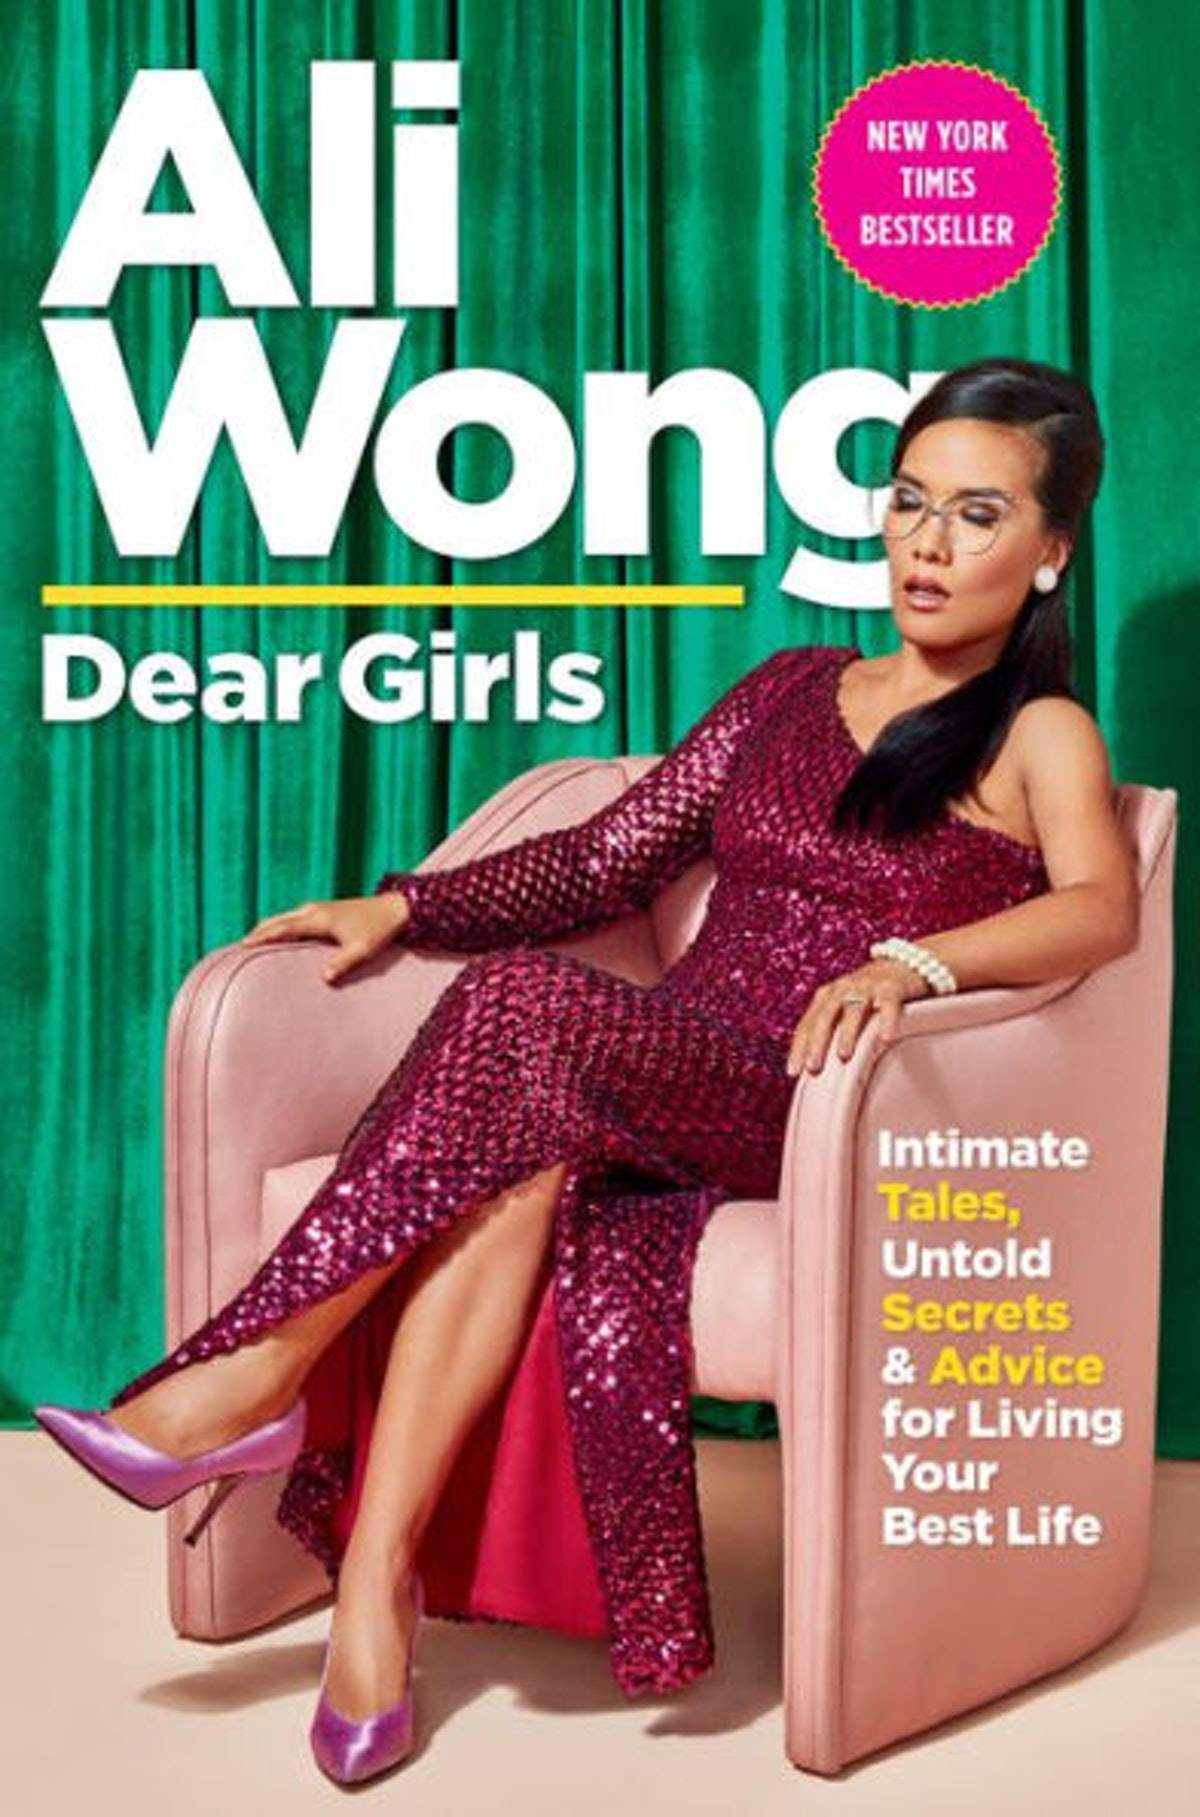 'Dear Girls: Intimate Tales, Untold Secrets & Advice for Living Your Best Life' by Ali Wong